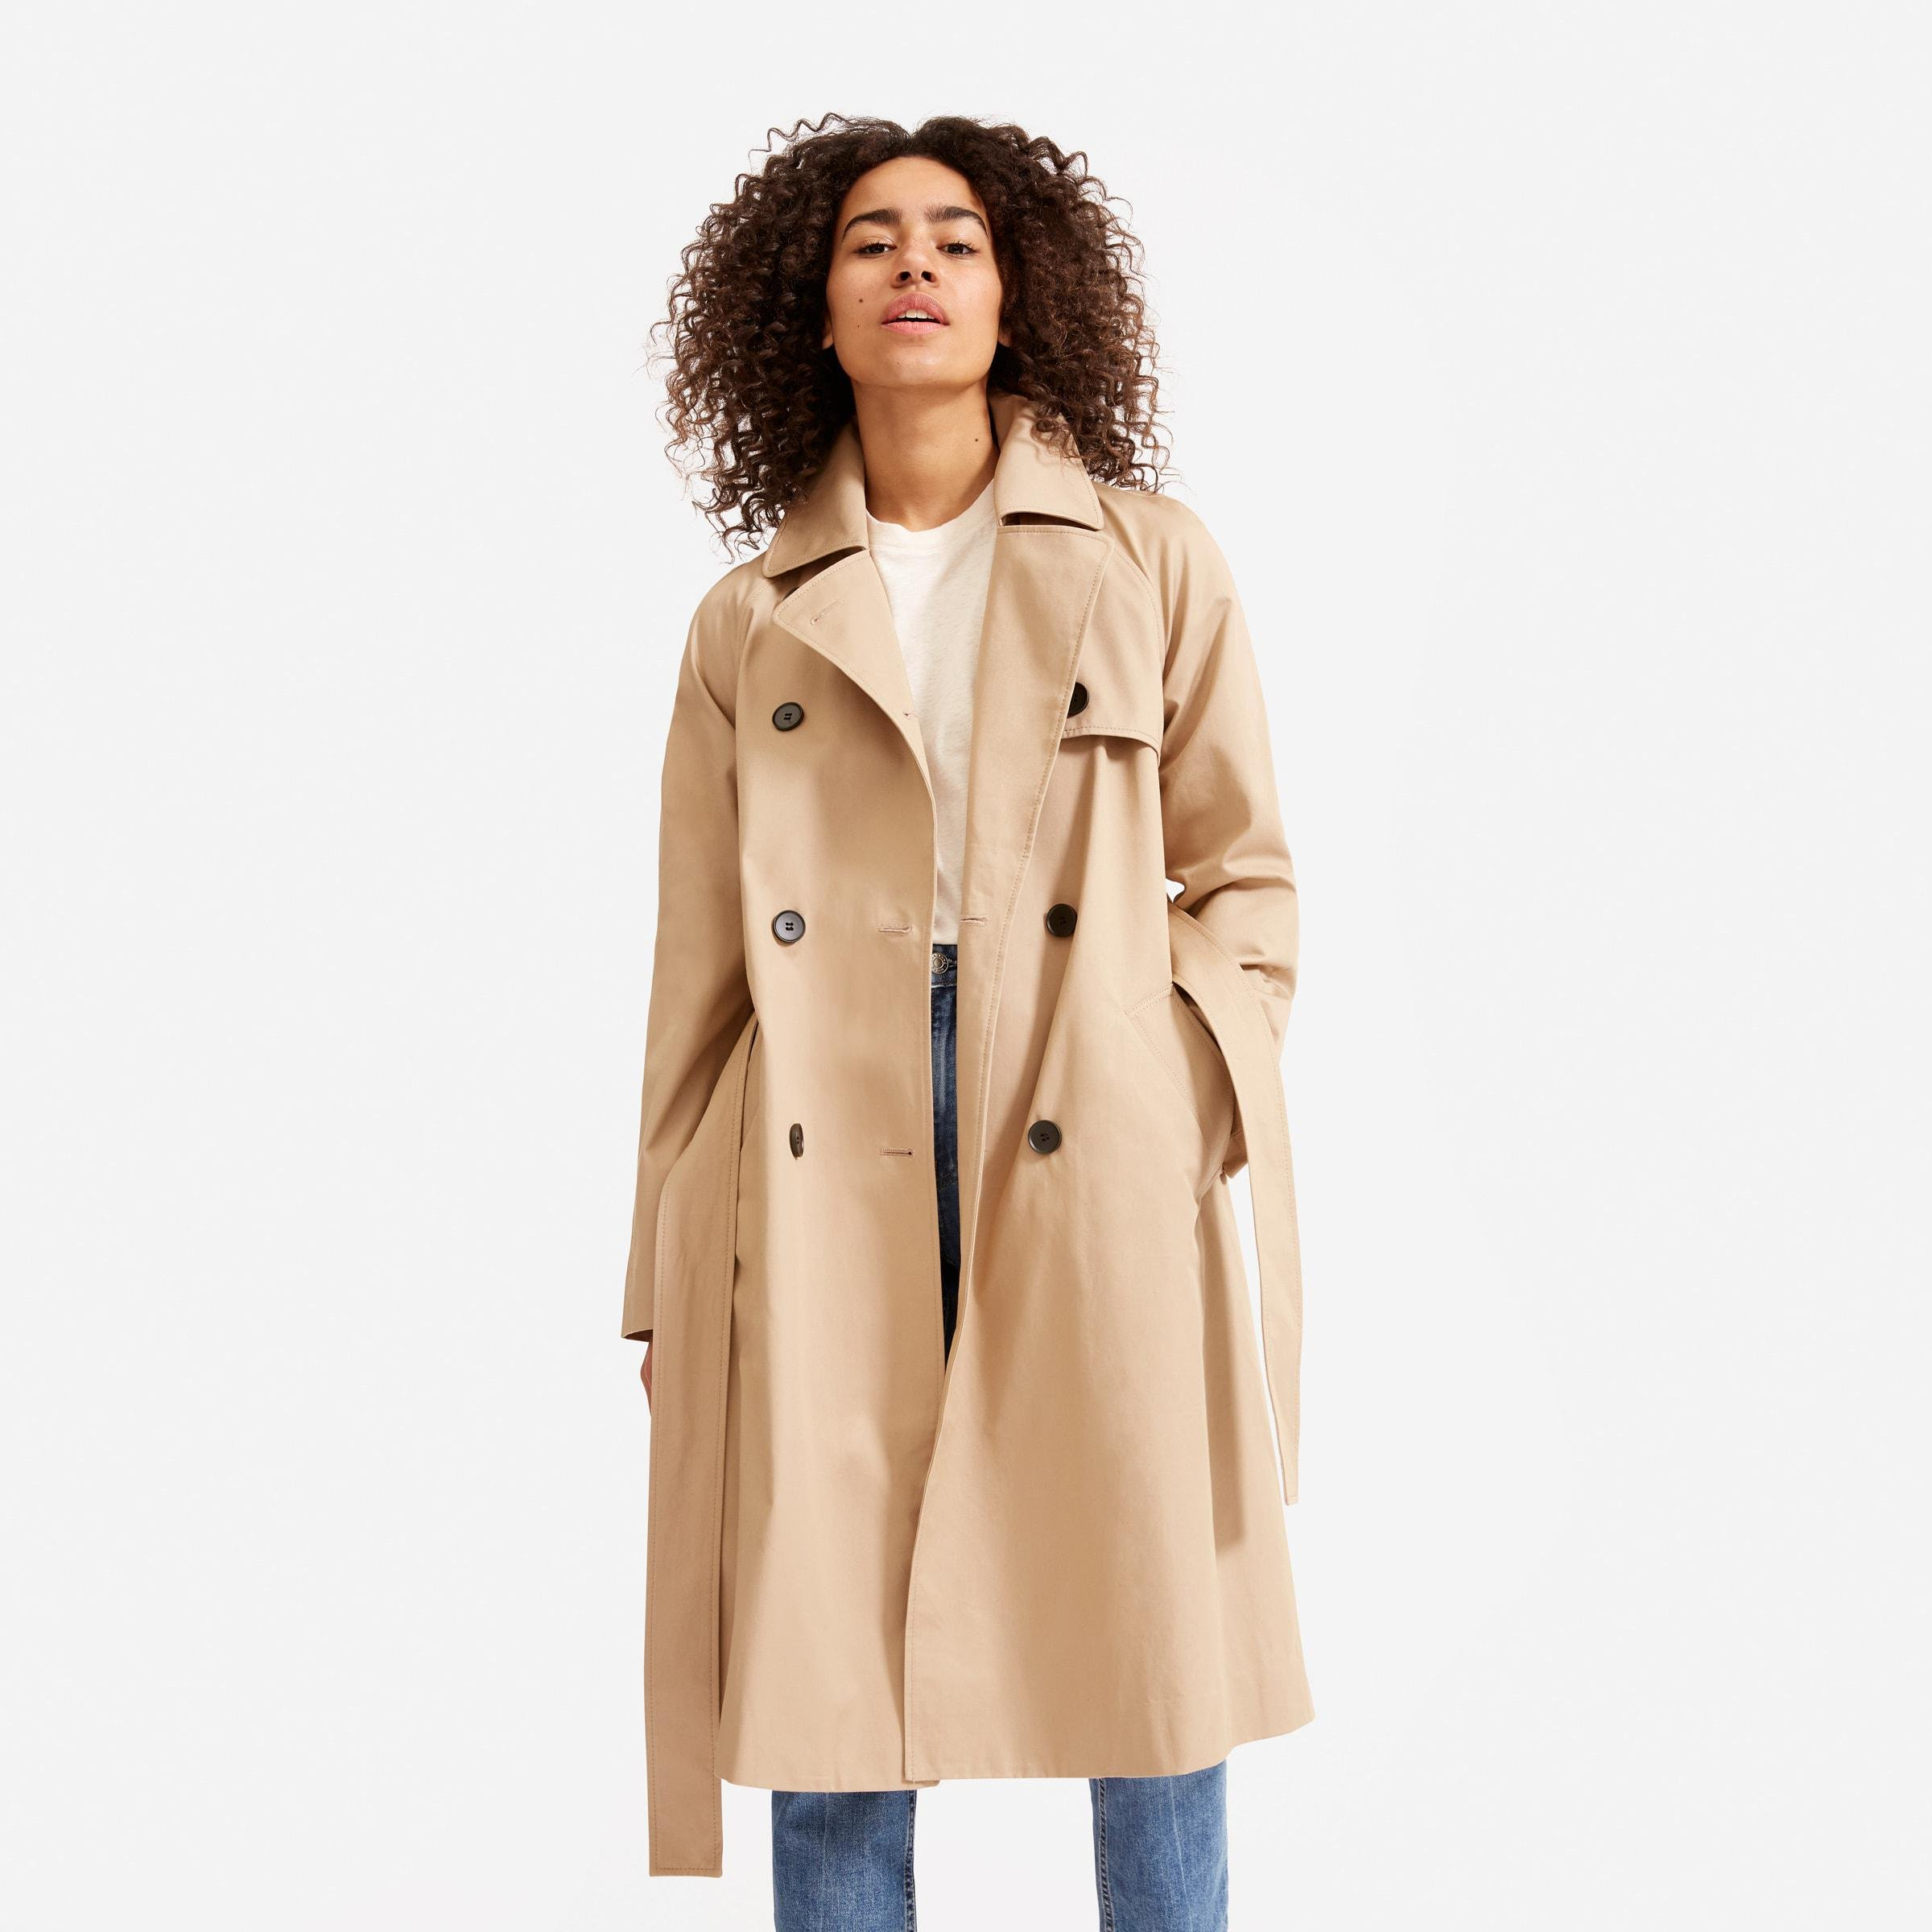 The Modern Trench Coat